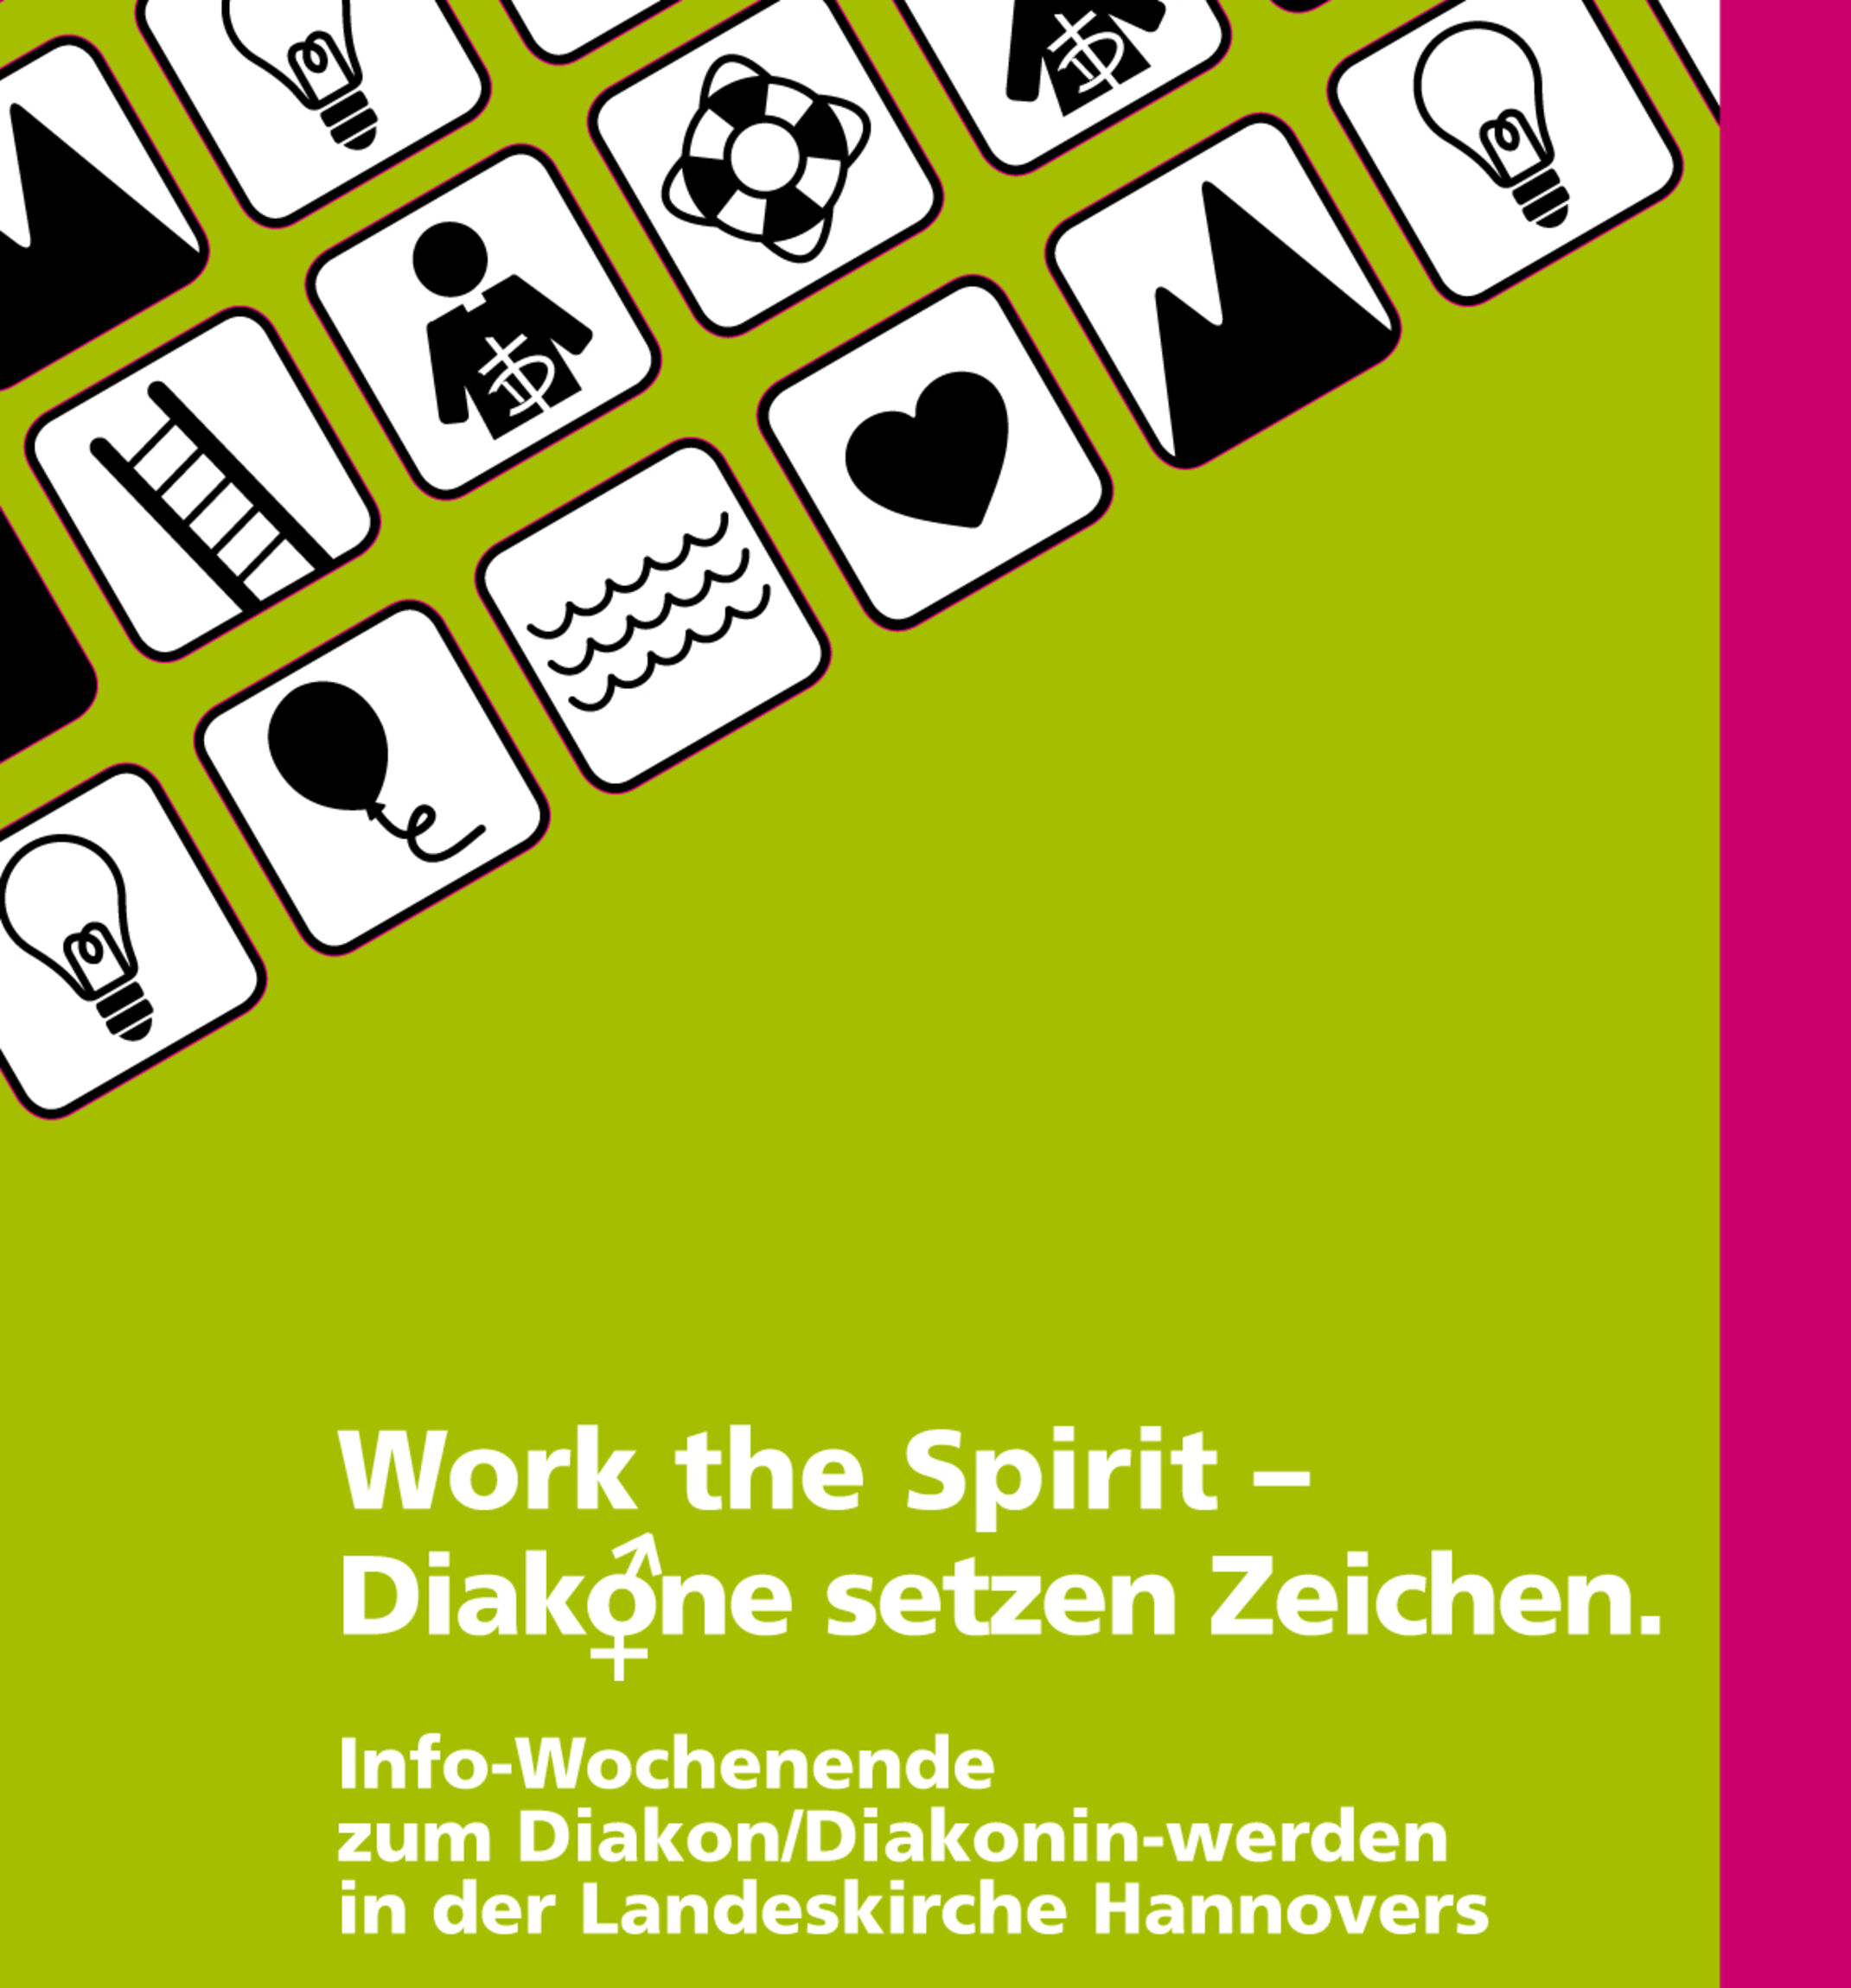 Work-the-spirit-Flyerausschnitt